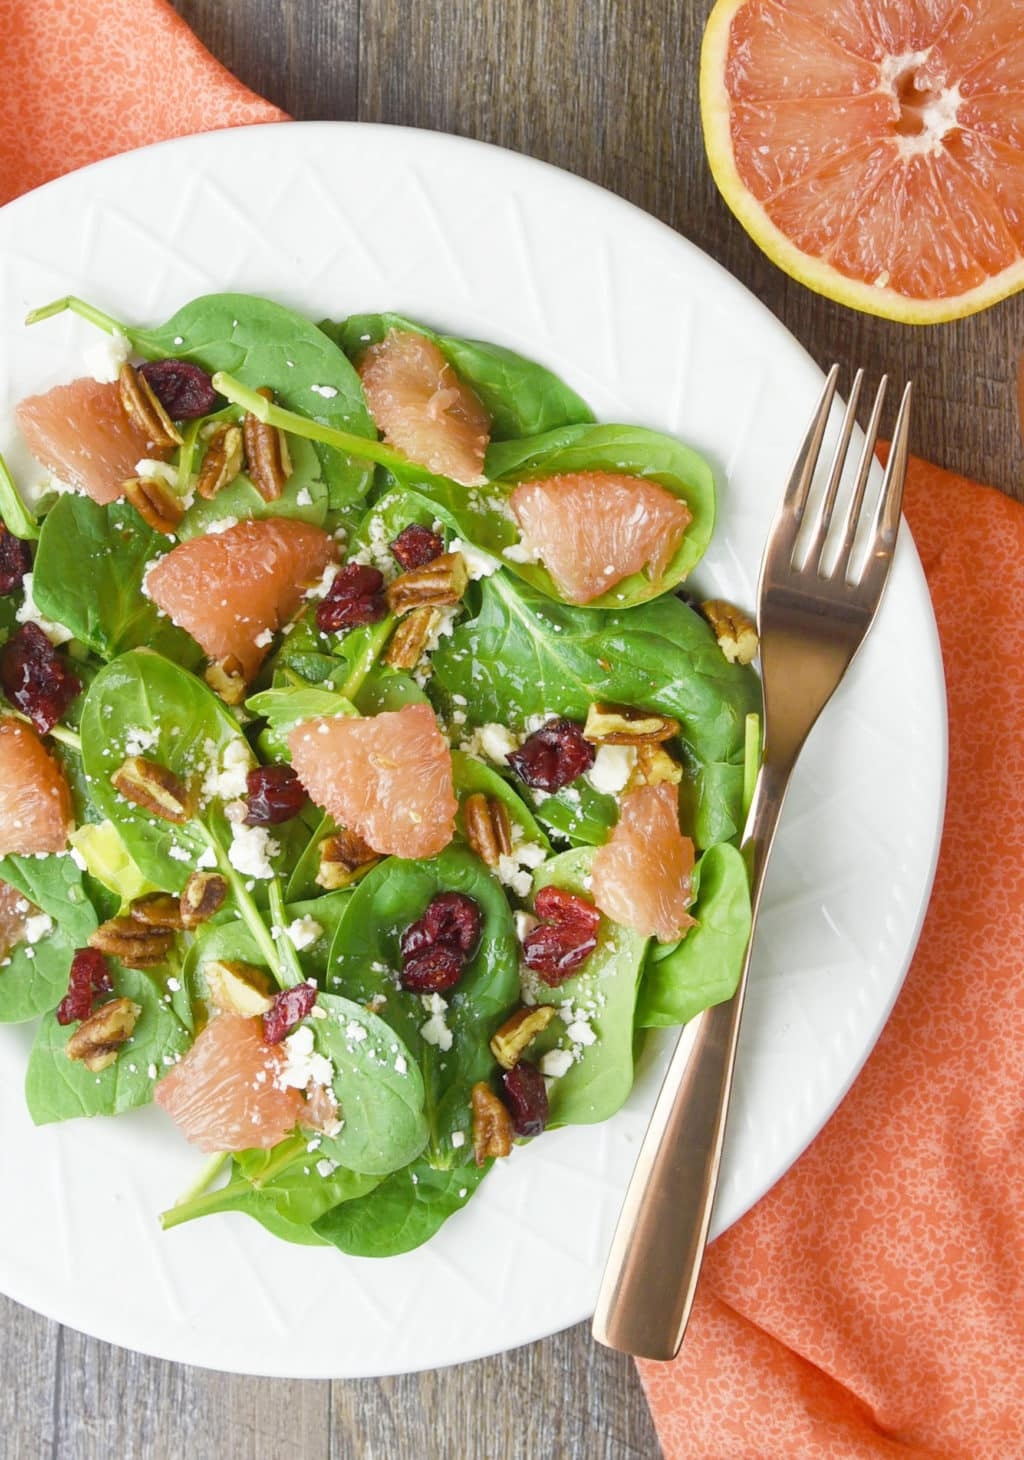 Spinach and Grapefruit Salad with Grapefruit Vinaigrette!